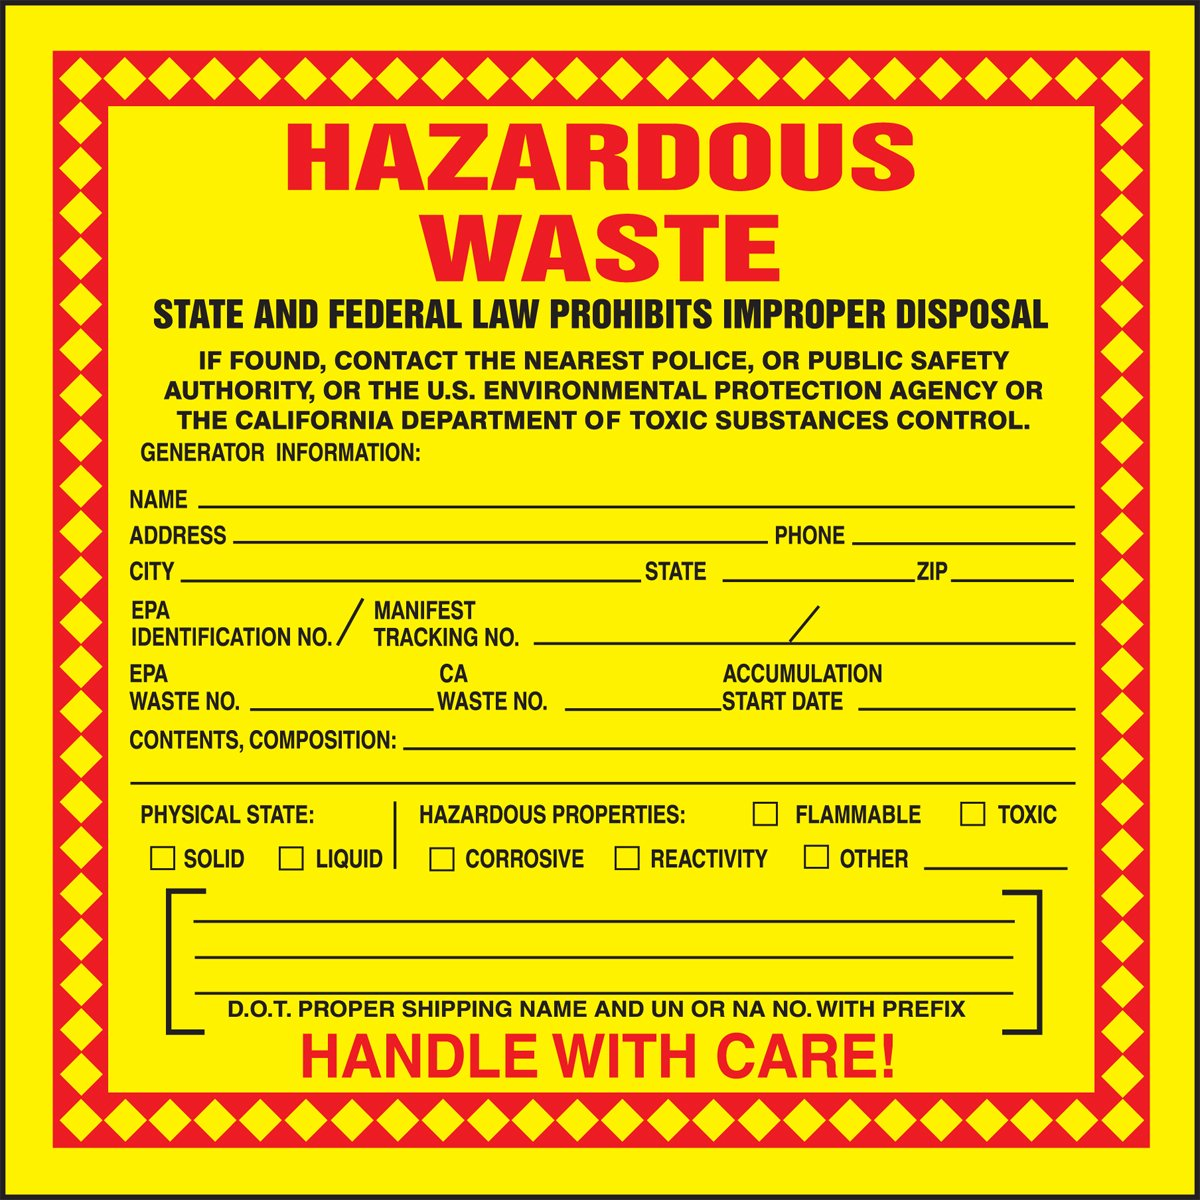 hazardous waste thesis The most downloaded articles from waste management in the last 90 days.